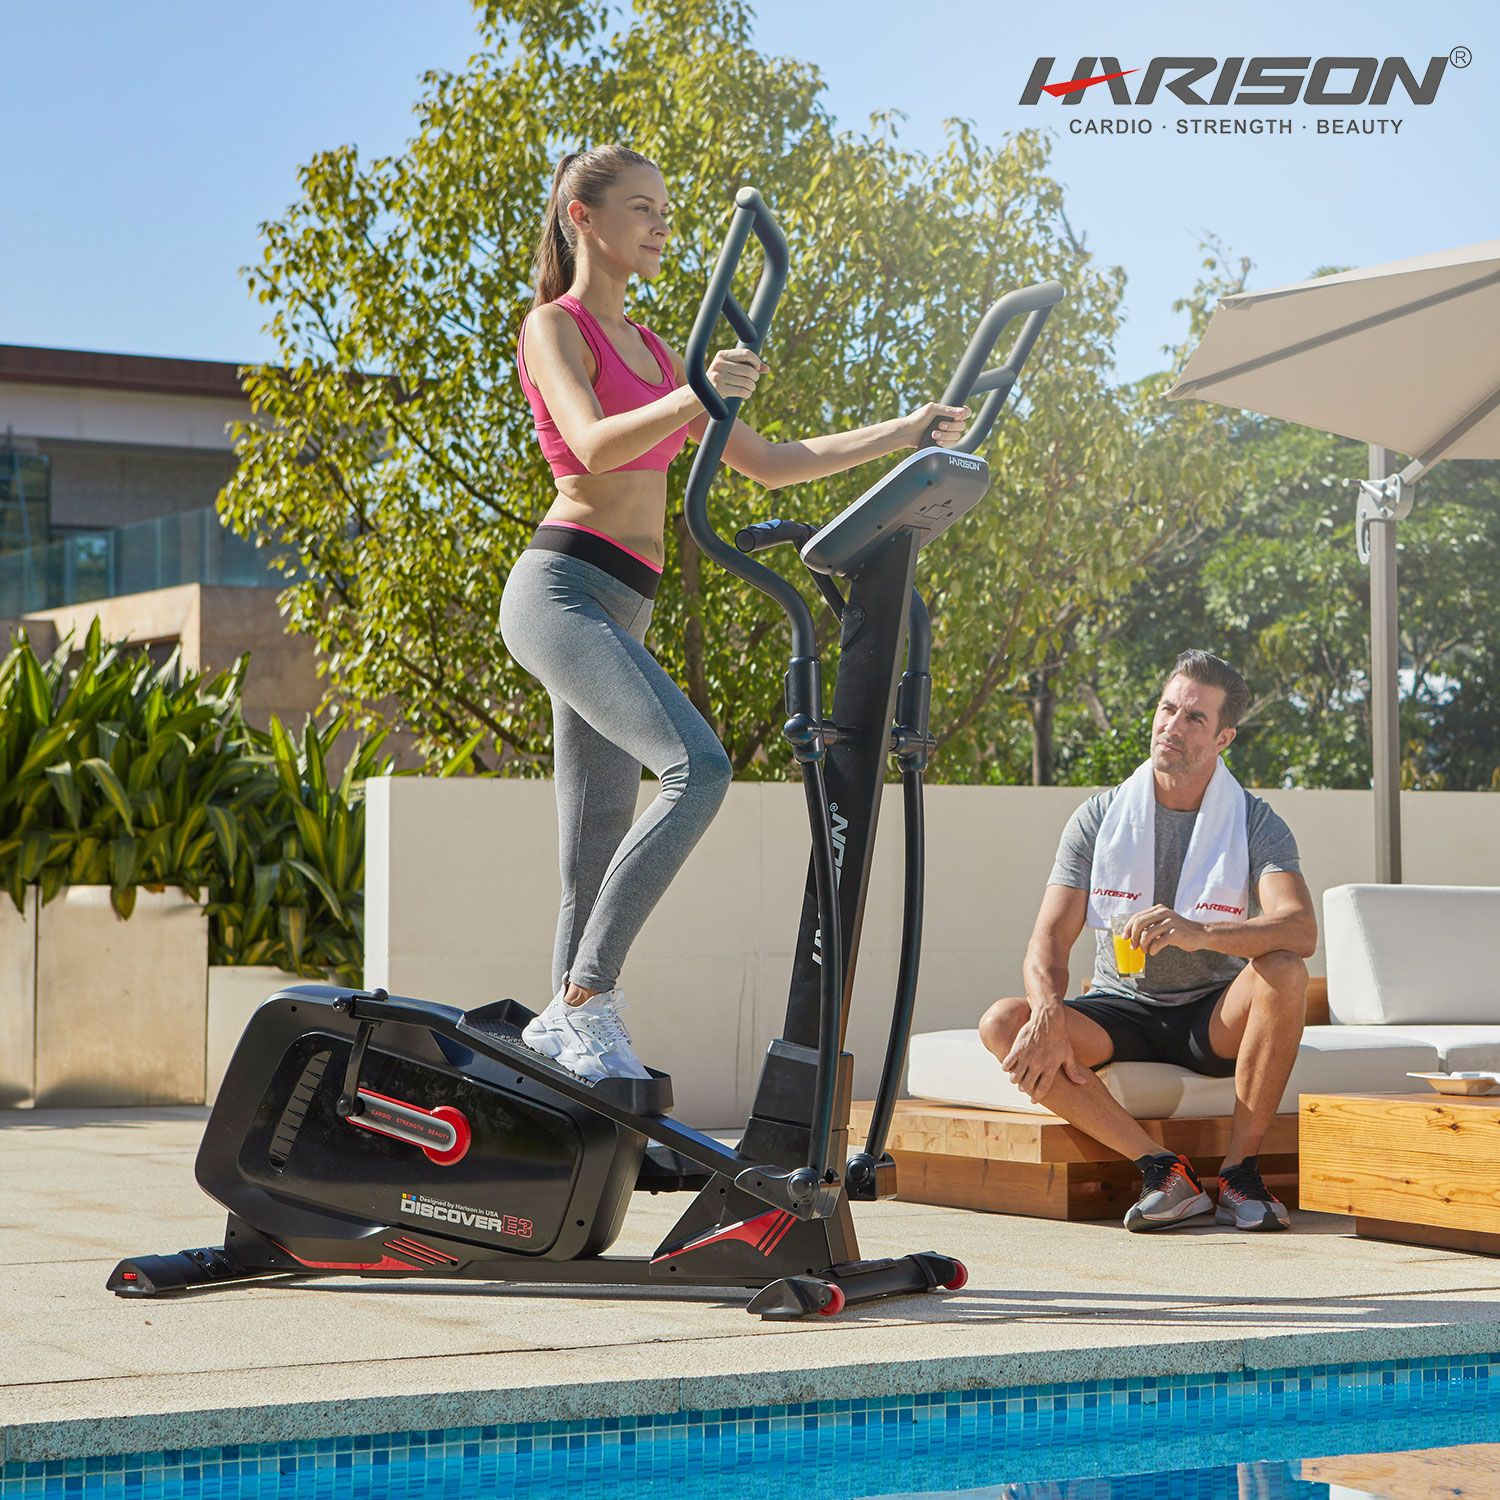 Harison Discover E3 Biking Workout Indoor Cycling Bike Elliptical Trainer